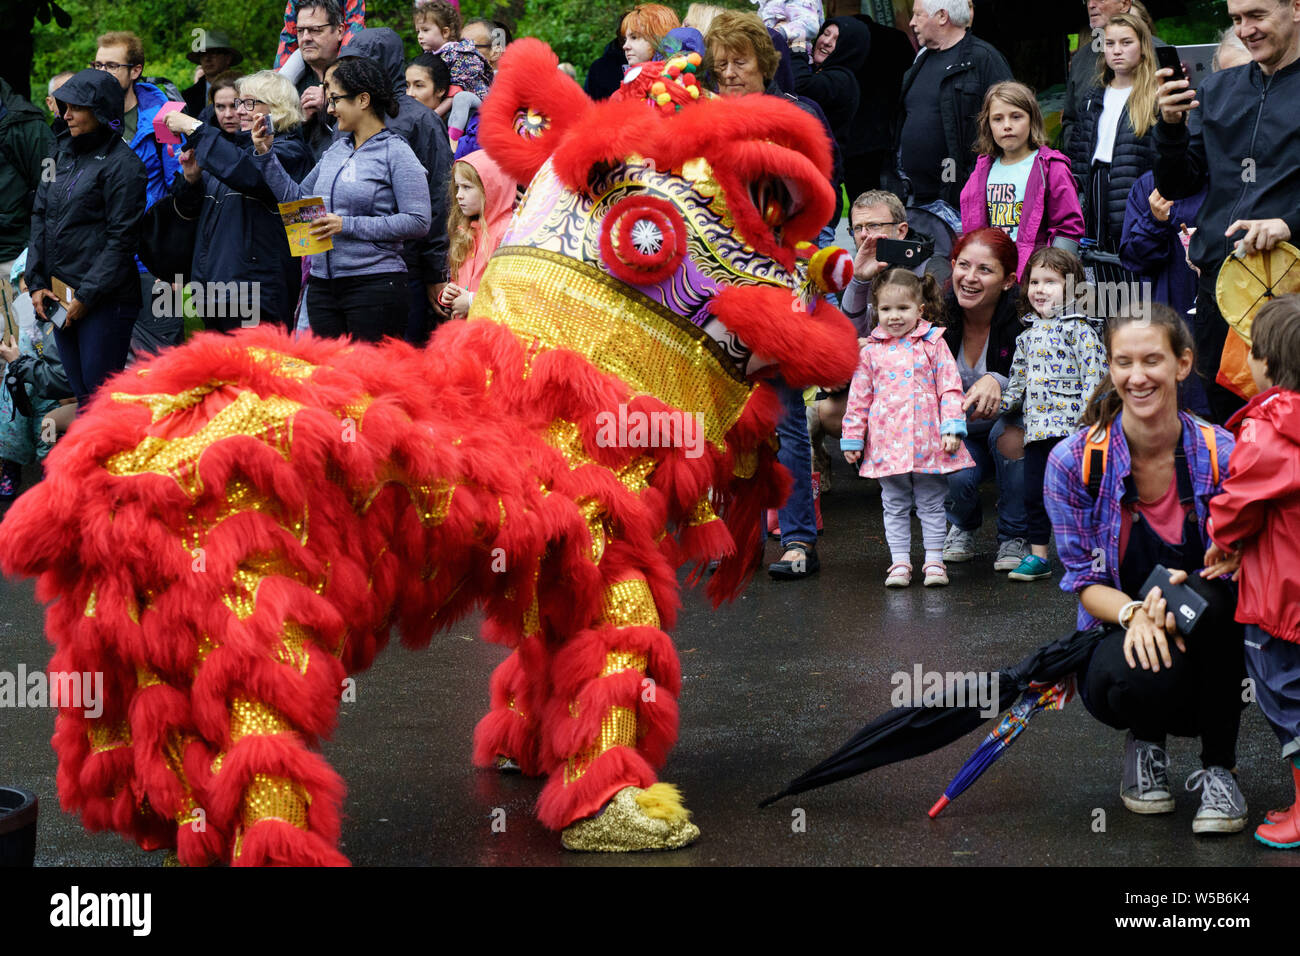 Red Chinese Dragon performing in front of a crowd of people at The Valley Gardens Carnival, Valley Gardens, Harrogate, North Yorkshire, England, UK Stock Photo